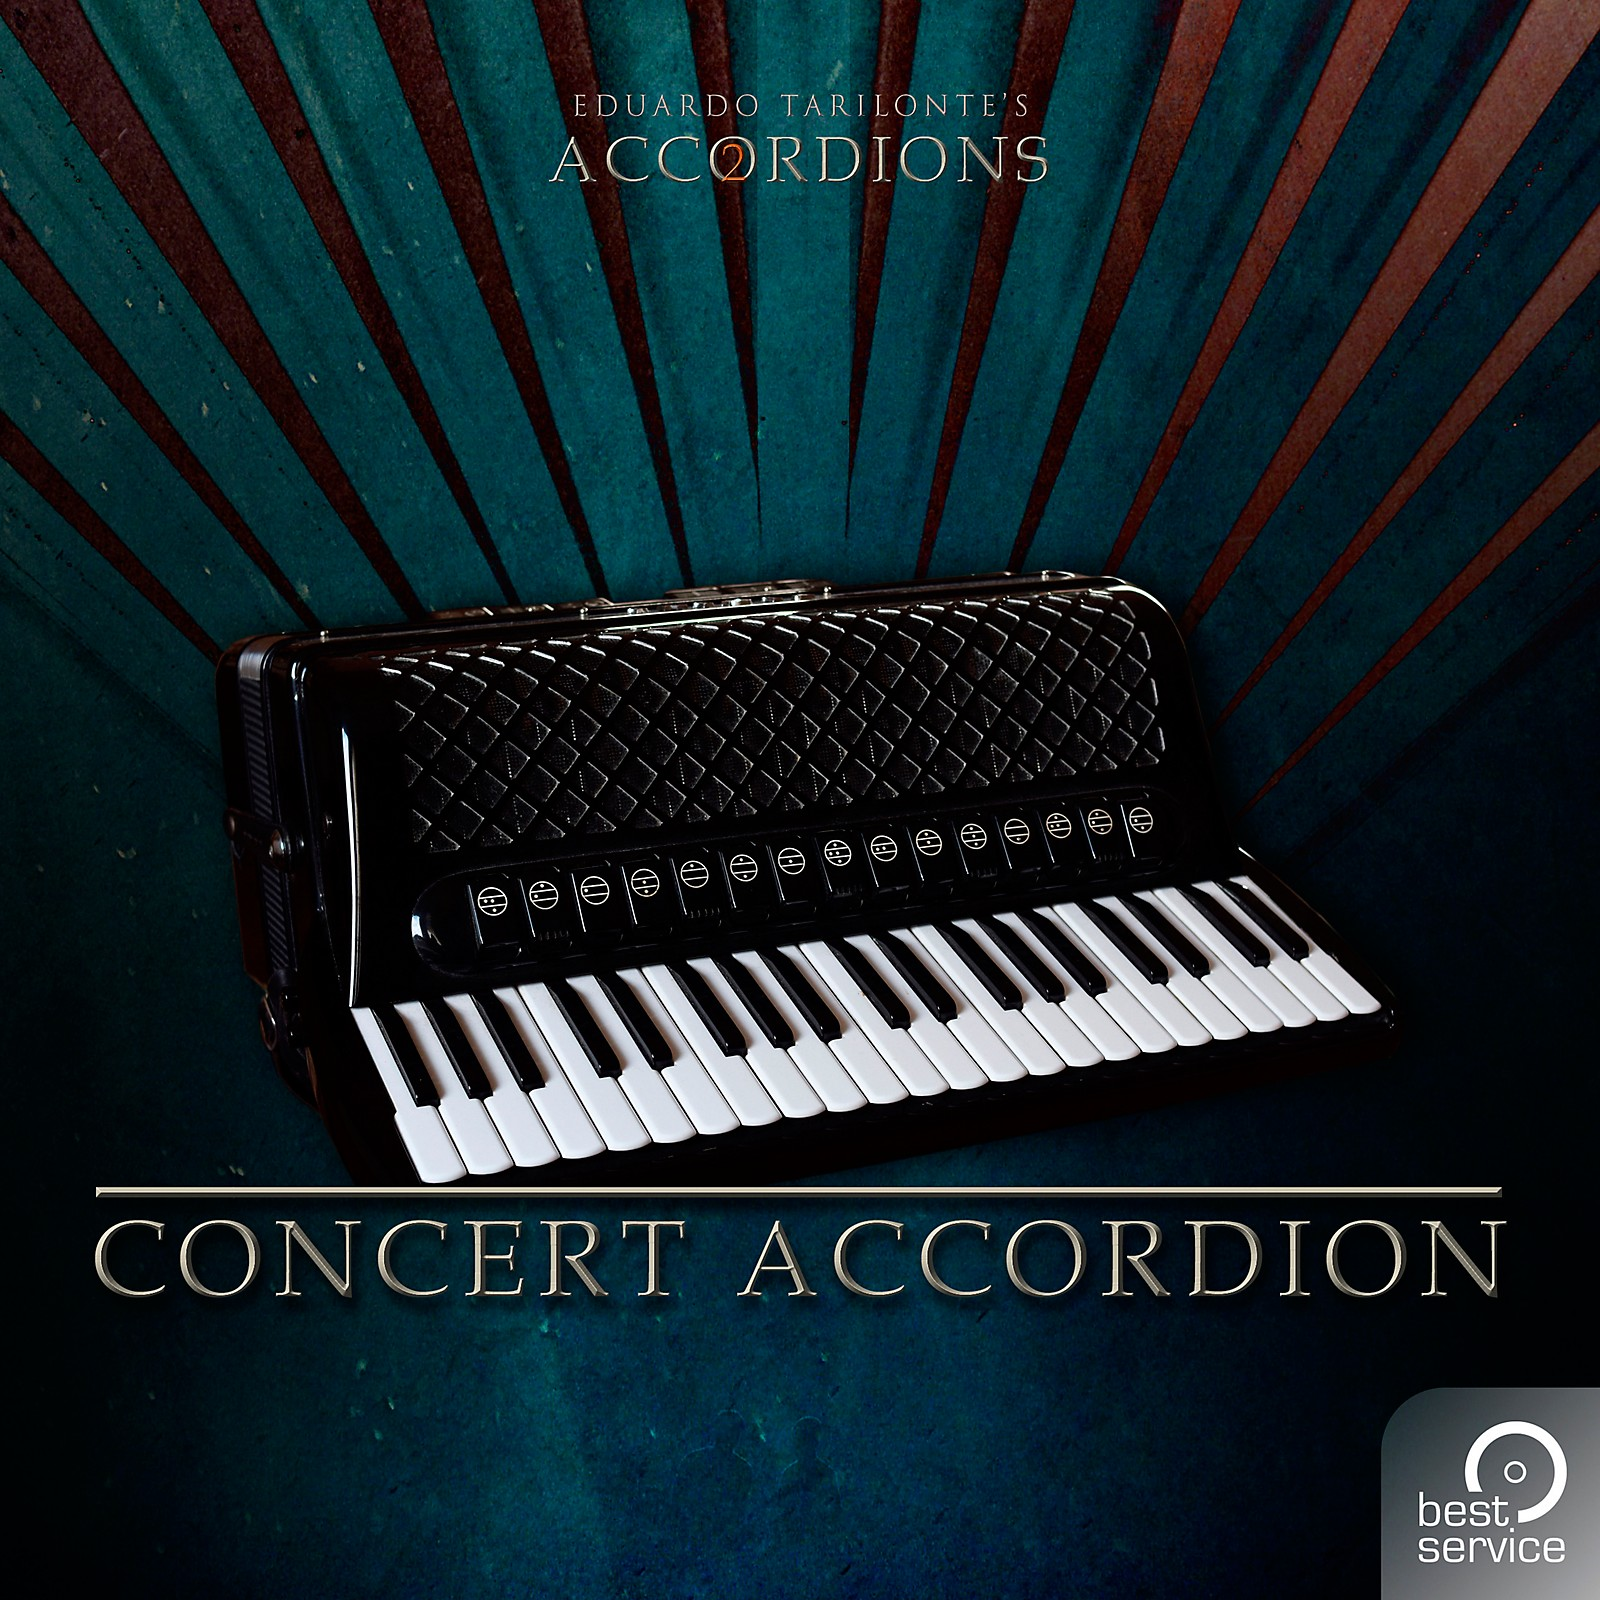 Best Service Accordions 2 - Single Concert Accordion